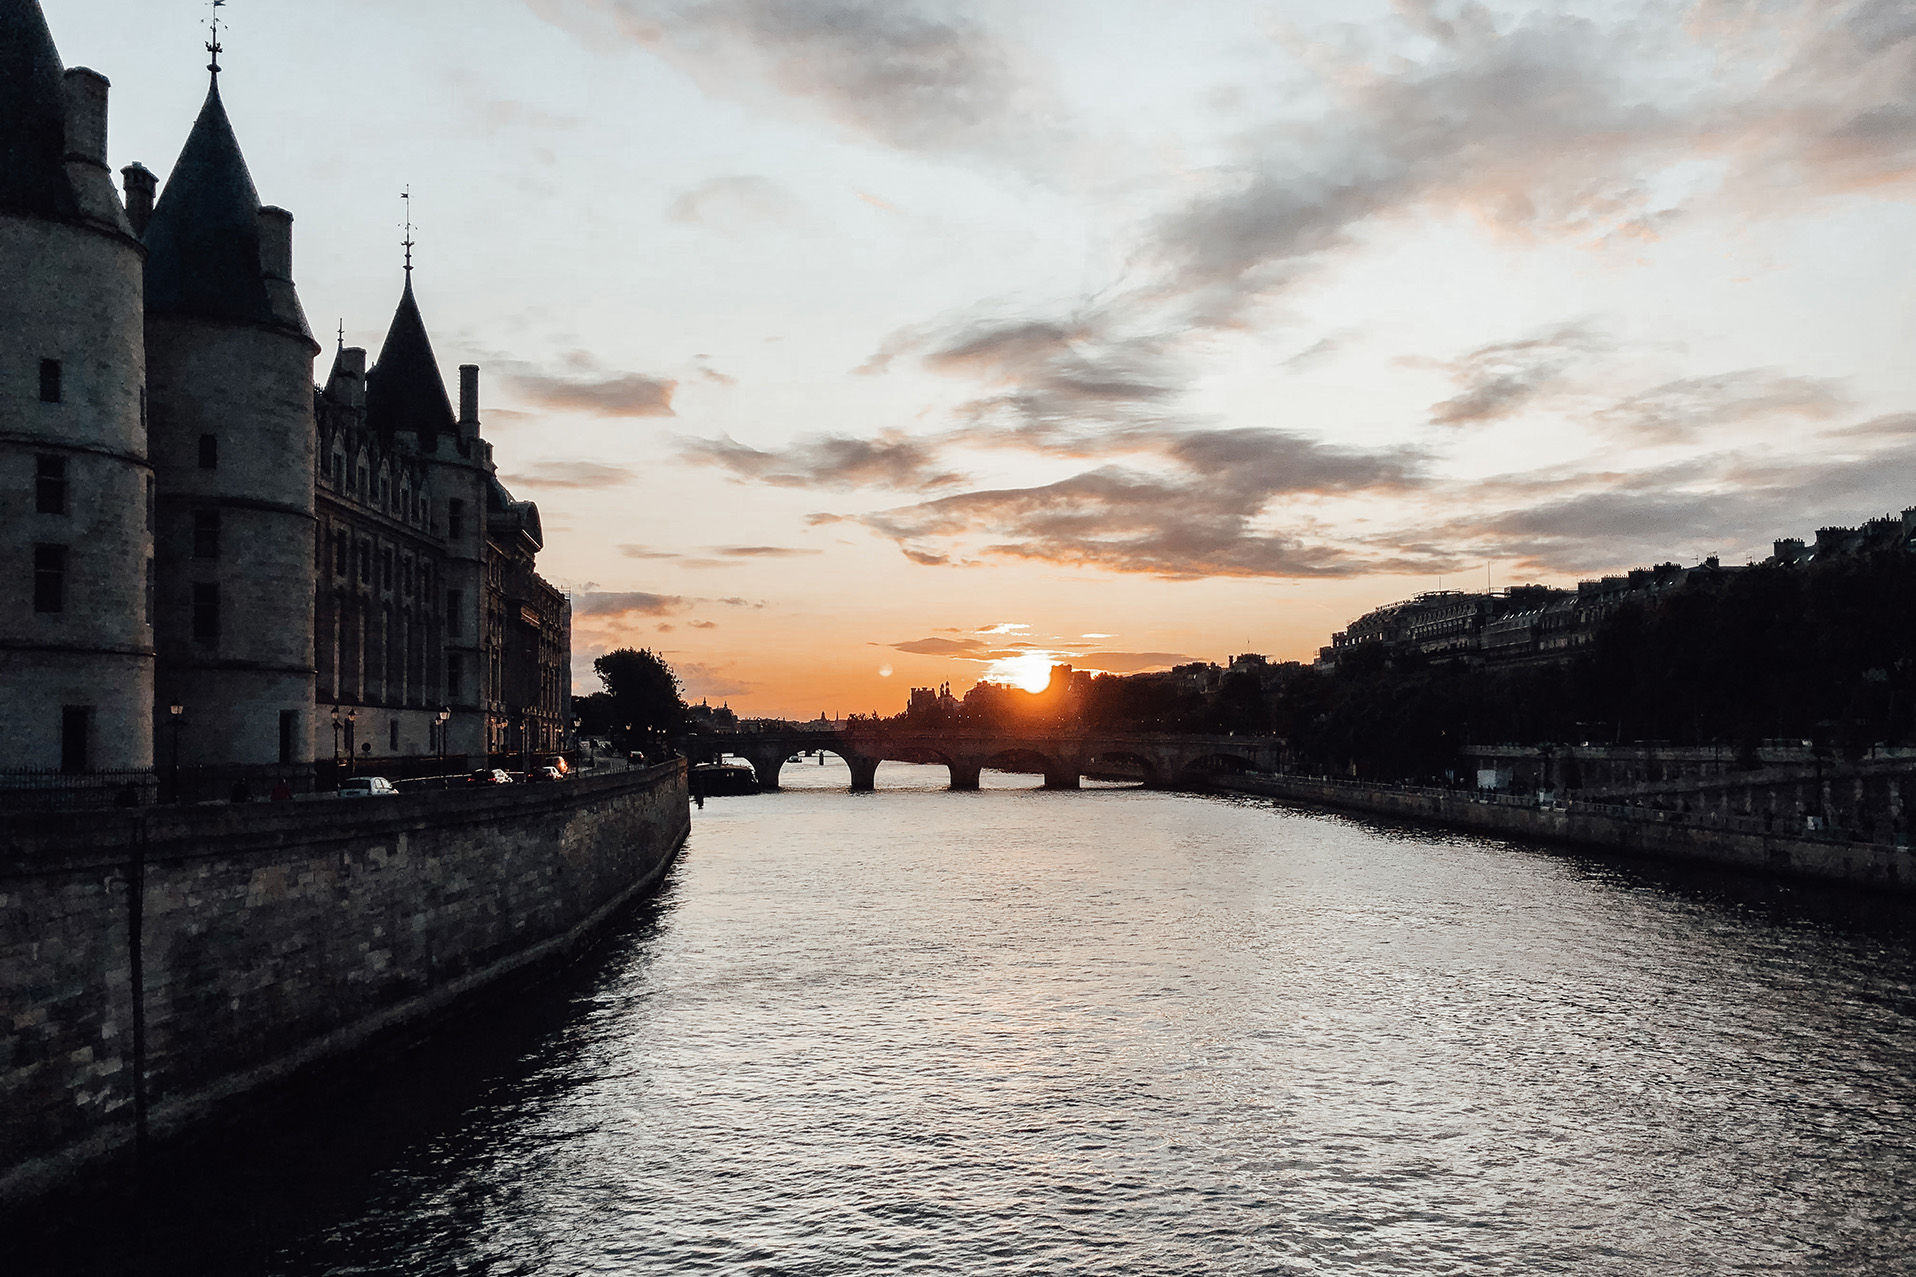 sunset river seine paris